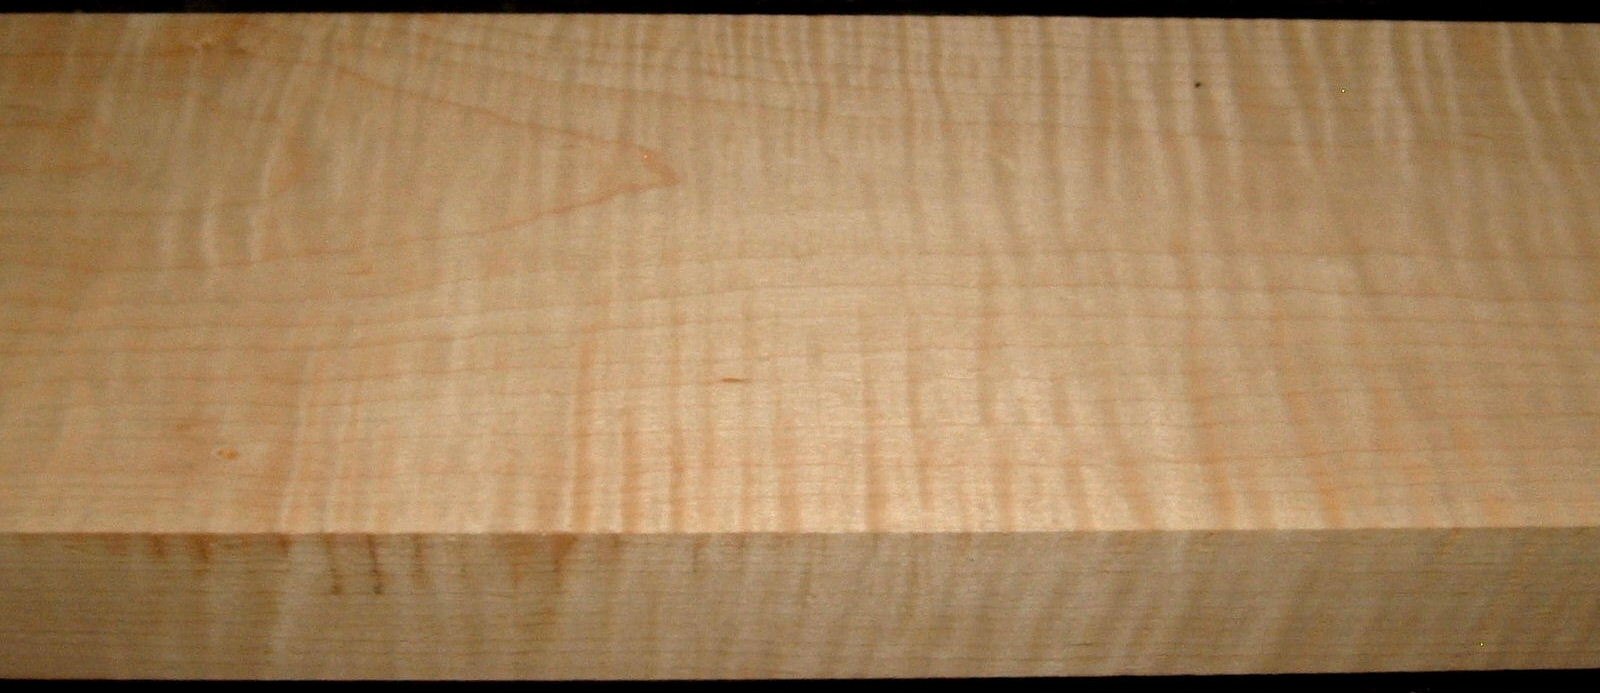 M2002-128, 1-15/16x5-3/4x47, Curly Tiger Maple